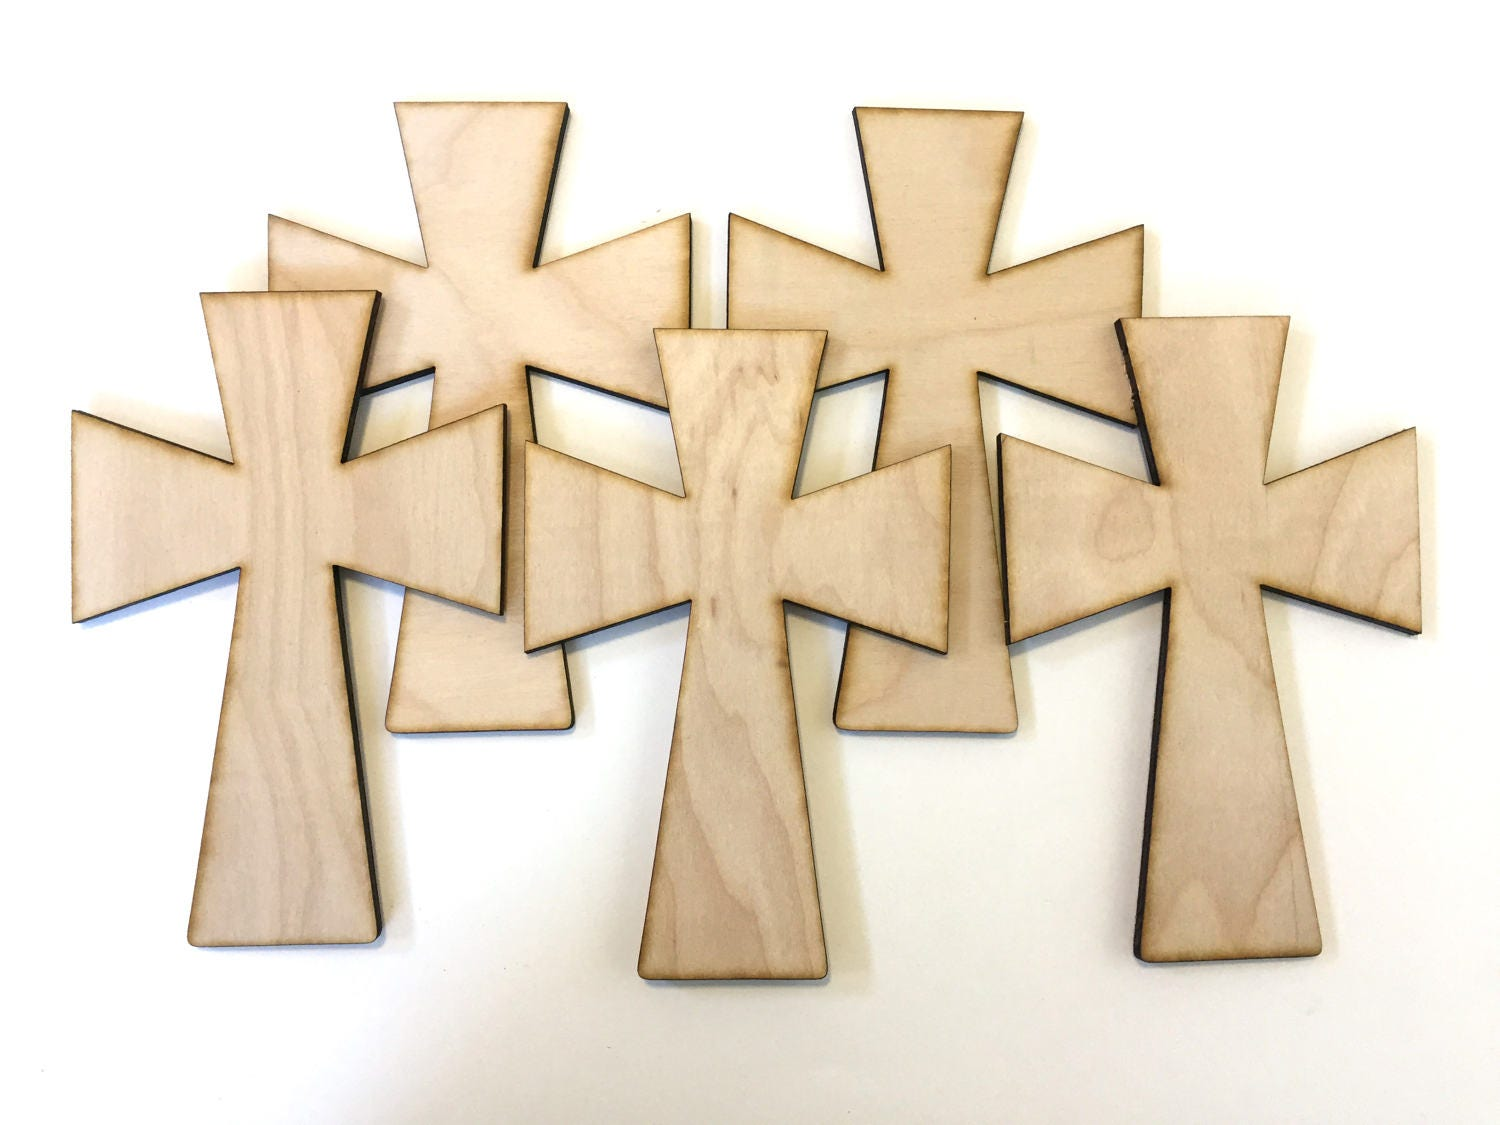 Unfinished wooden crosses for crafts - Sold By Lightninglasercuts